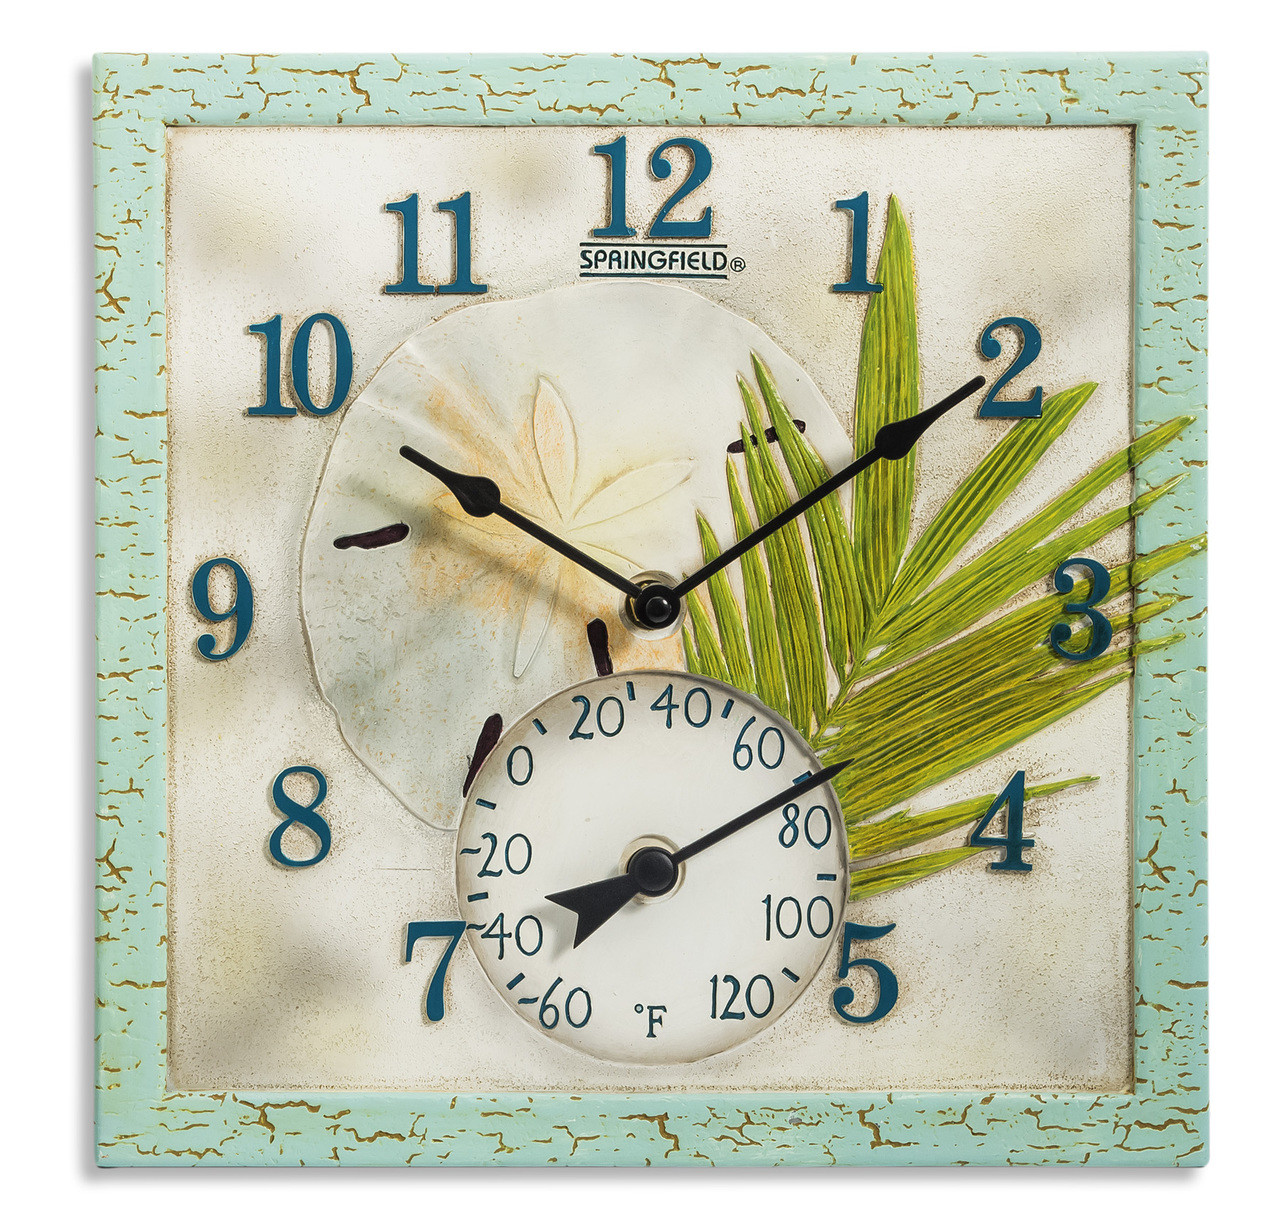 12 Quot Square Sand Dollar Outdoor Clock And Thermometer